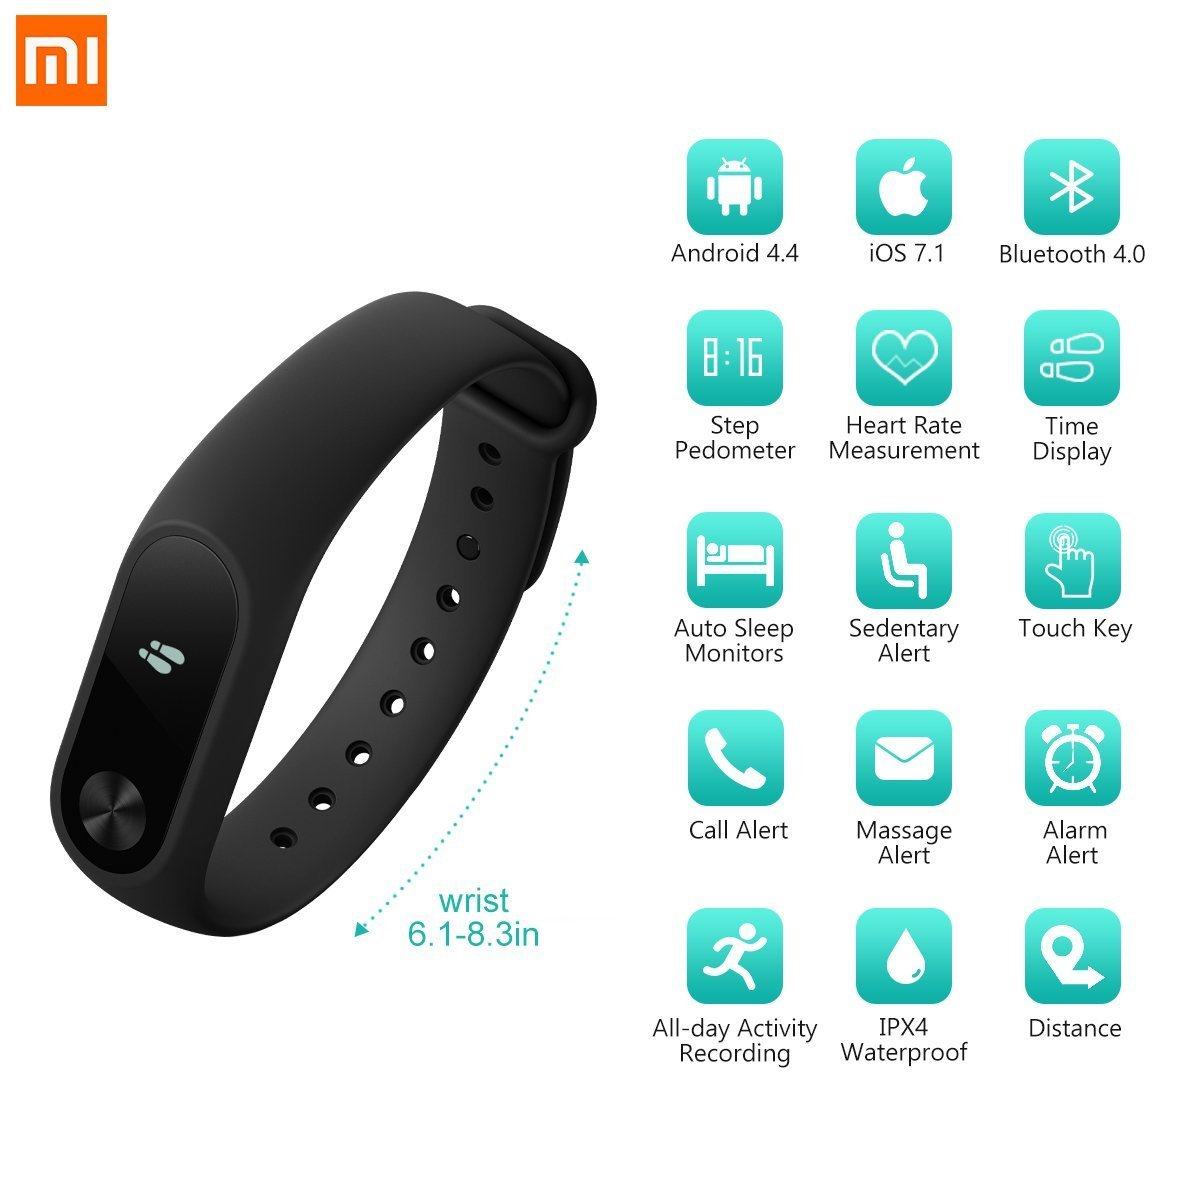 Fitness Tracker Original Xiaomi Mi Band 2 With Heart M2 Bluetooth Smart Bracelet Look Rate Monitor Wristband And Oled Display For Women Kids Men Waterproof Watch Pedometer